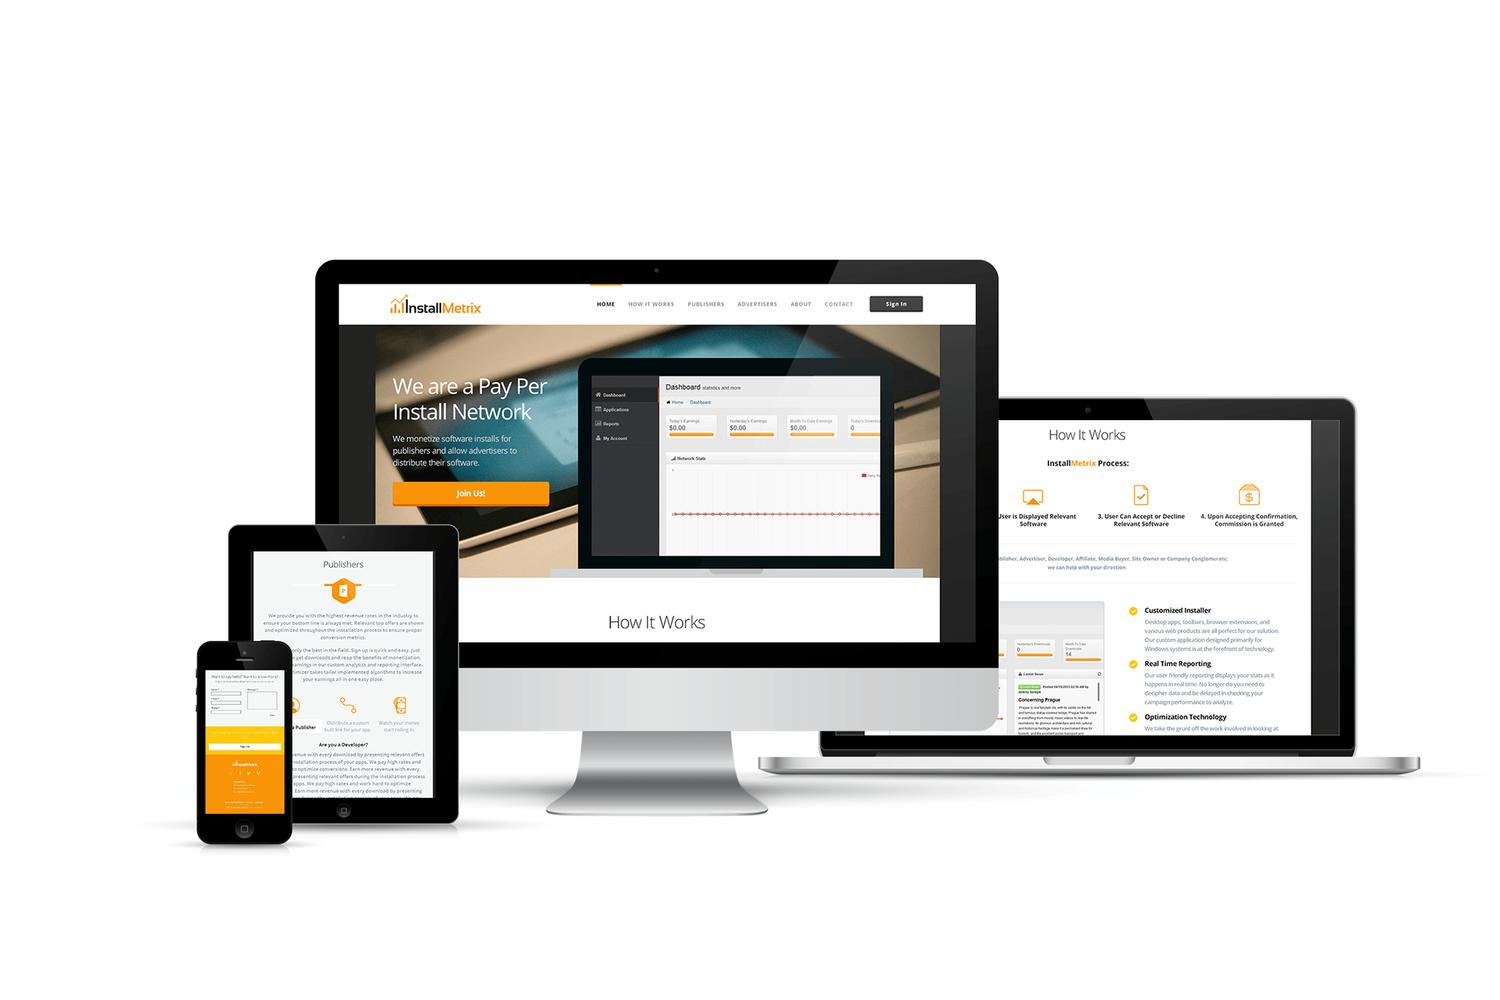 Responsive Website Design & Development by wantdesign - 62265